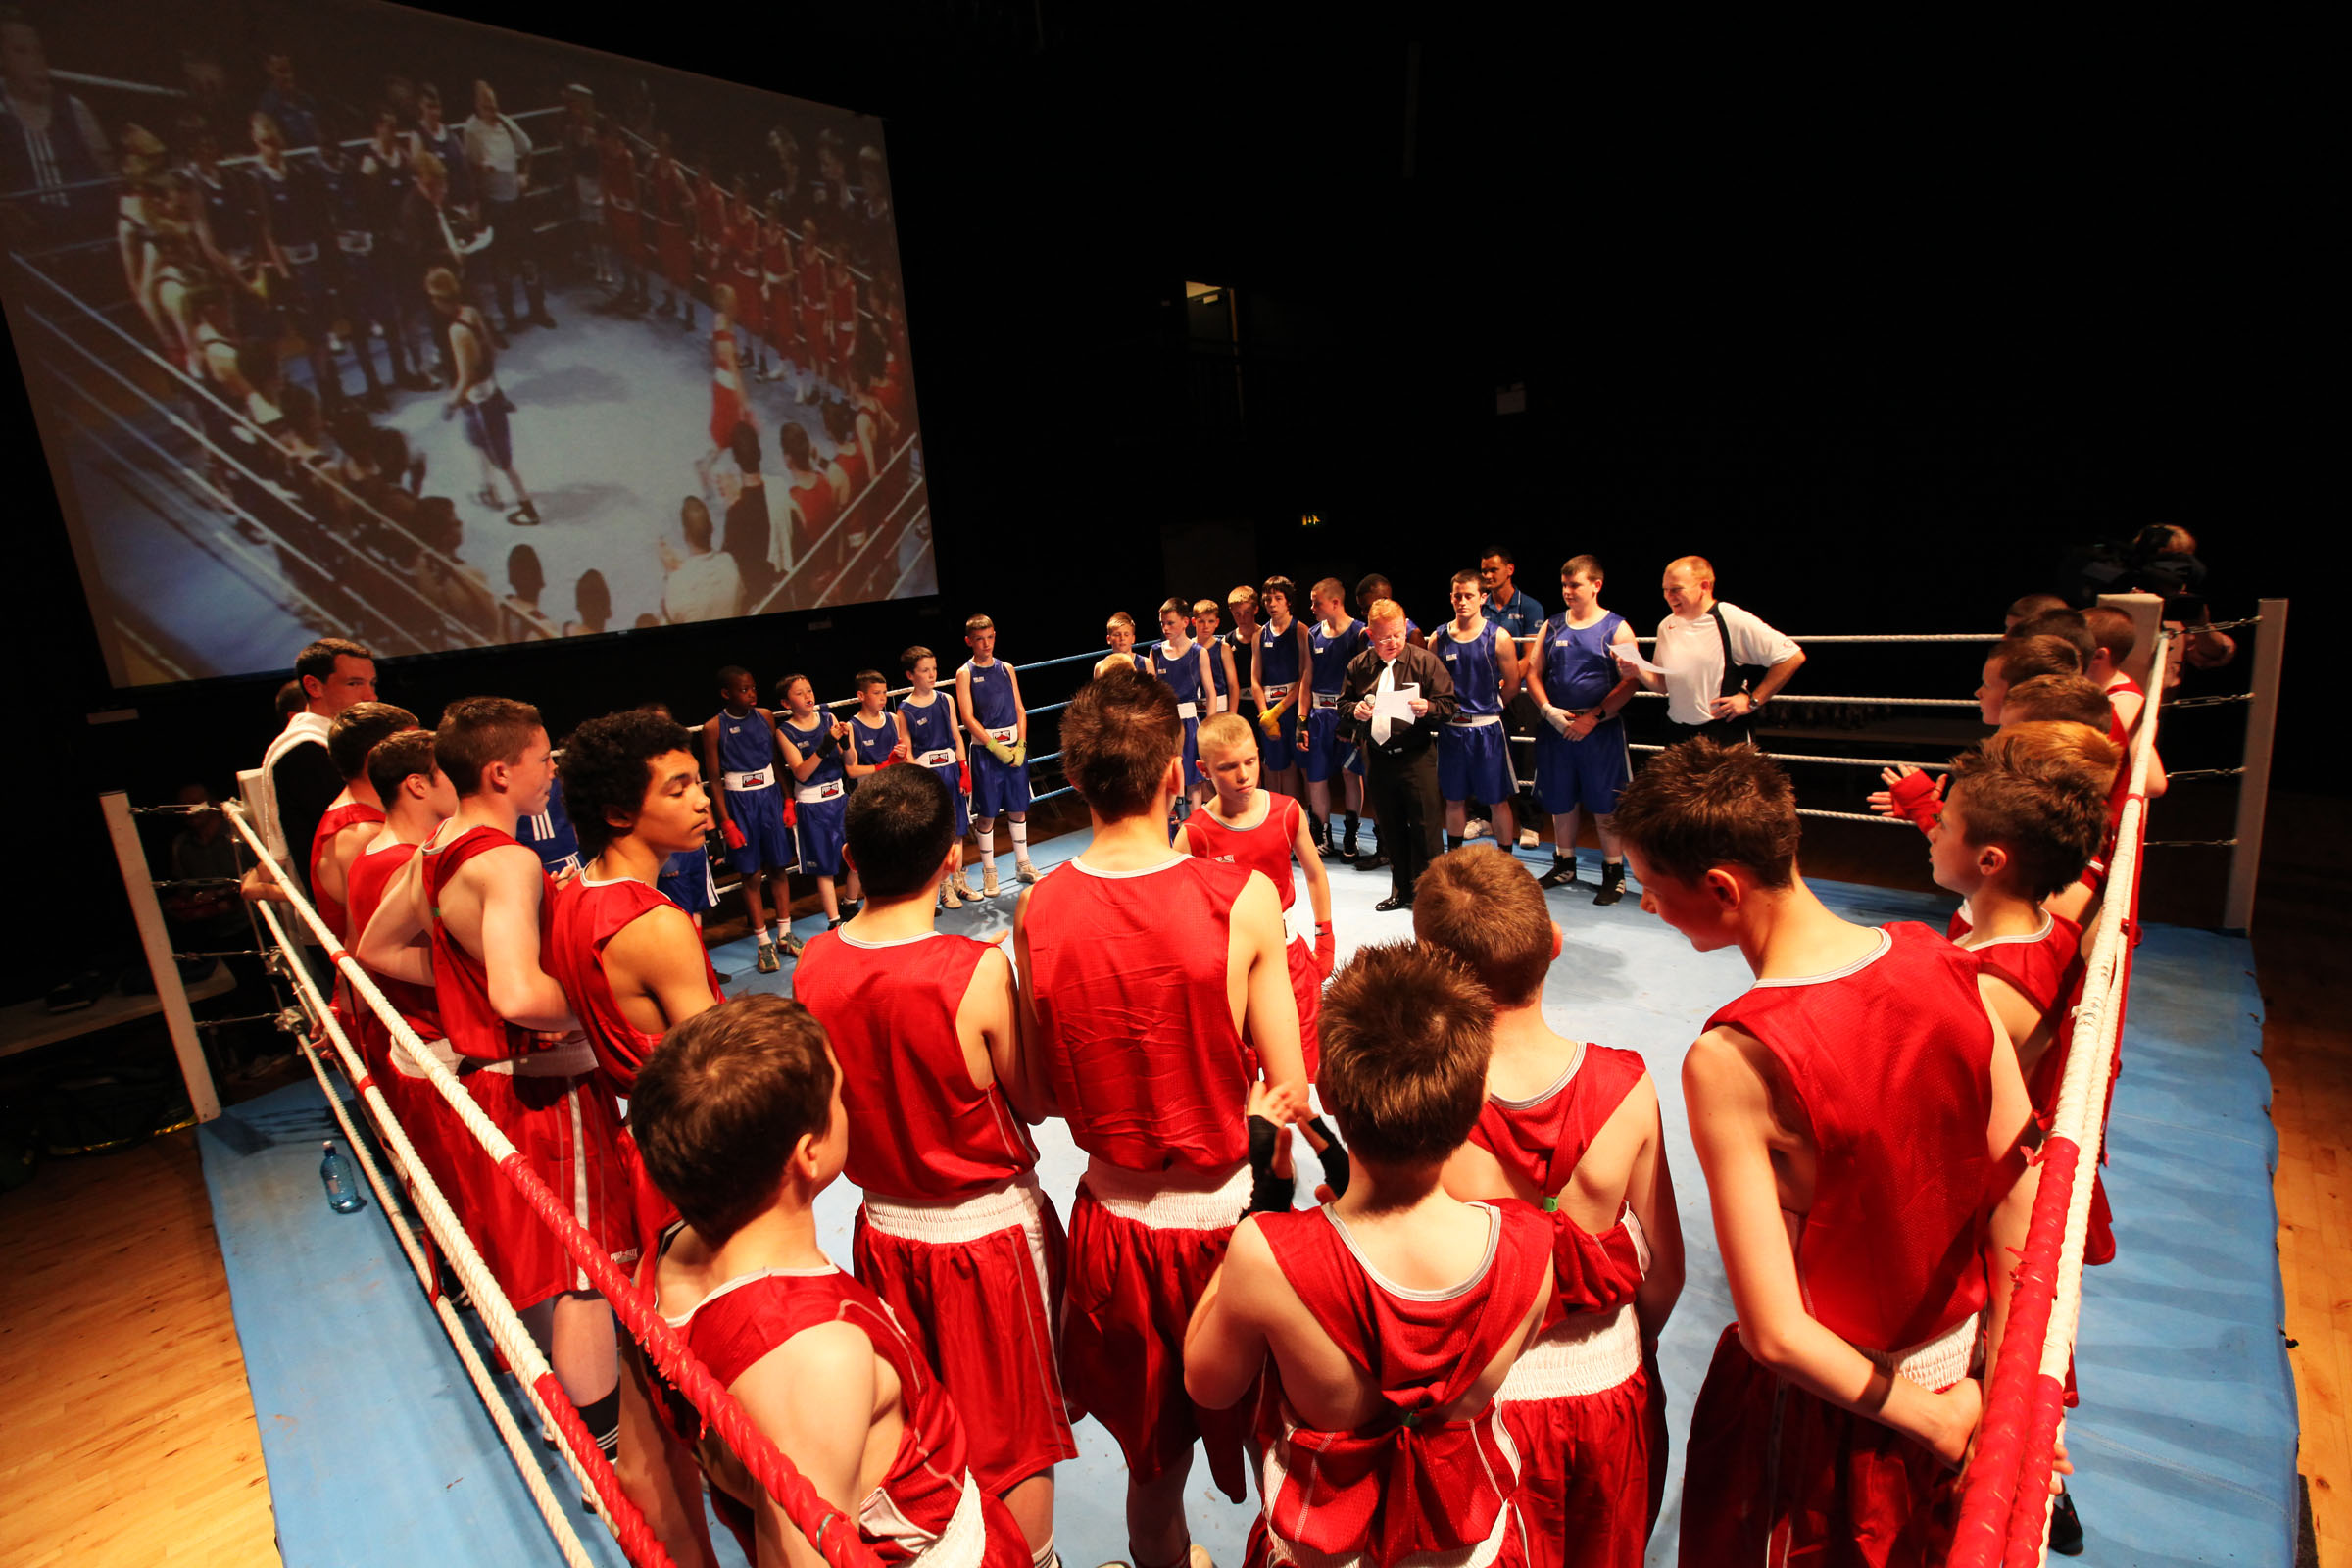 Feast of boxing as young people beat sectarianism to the punch